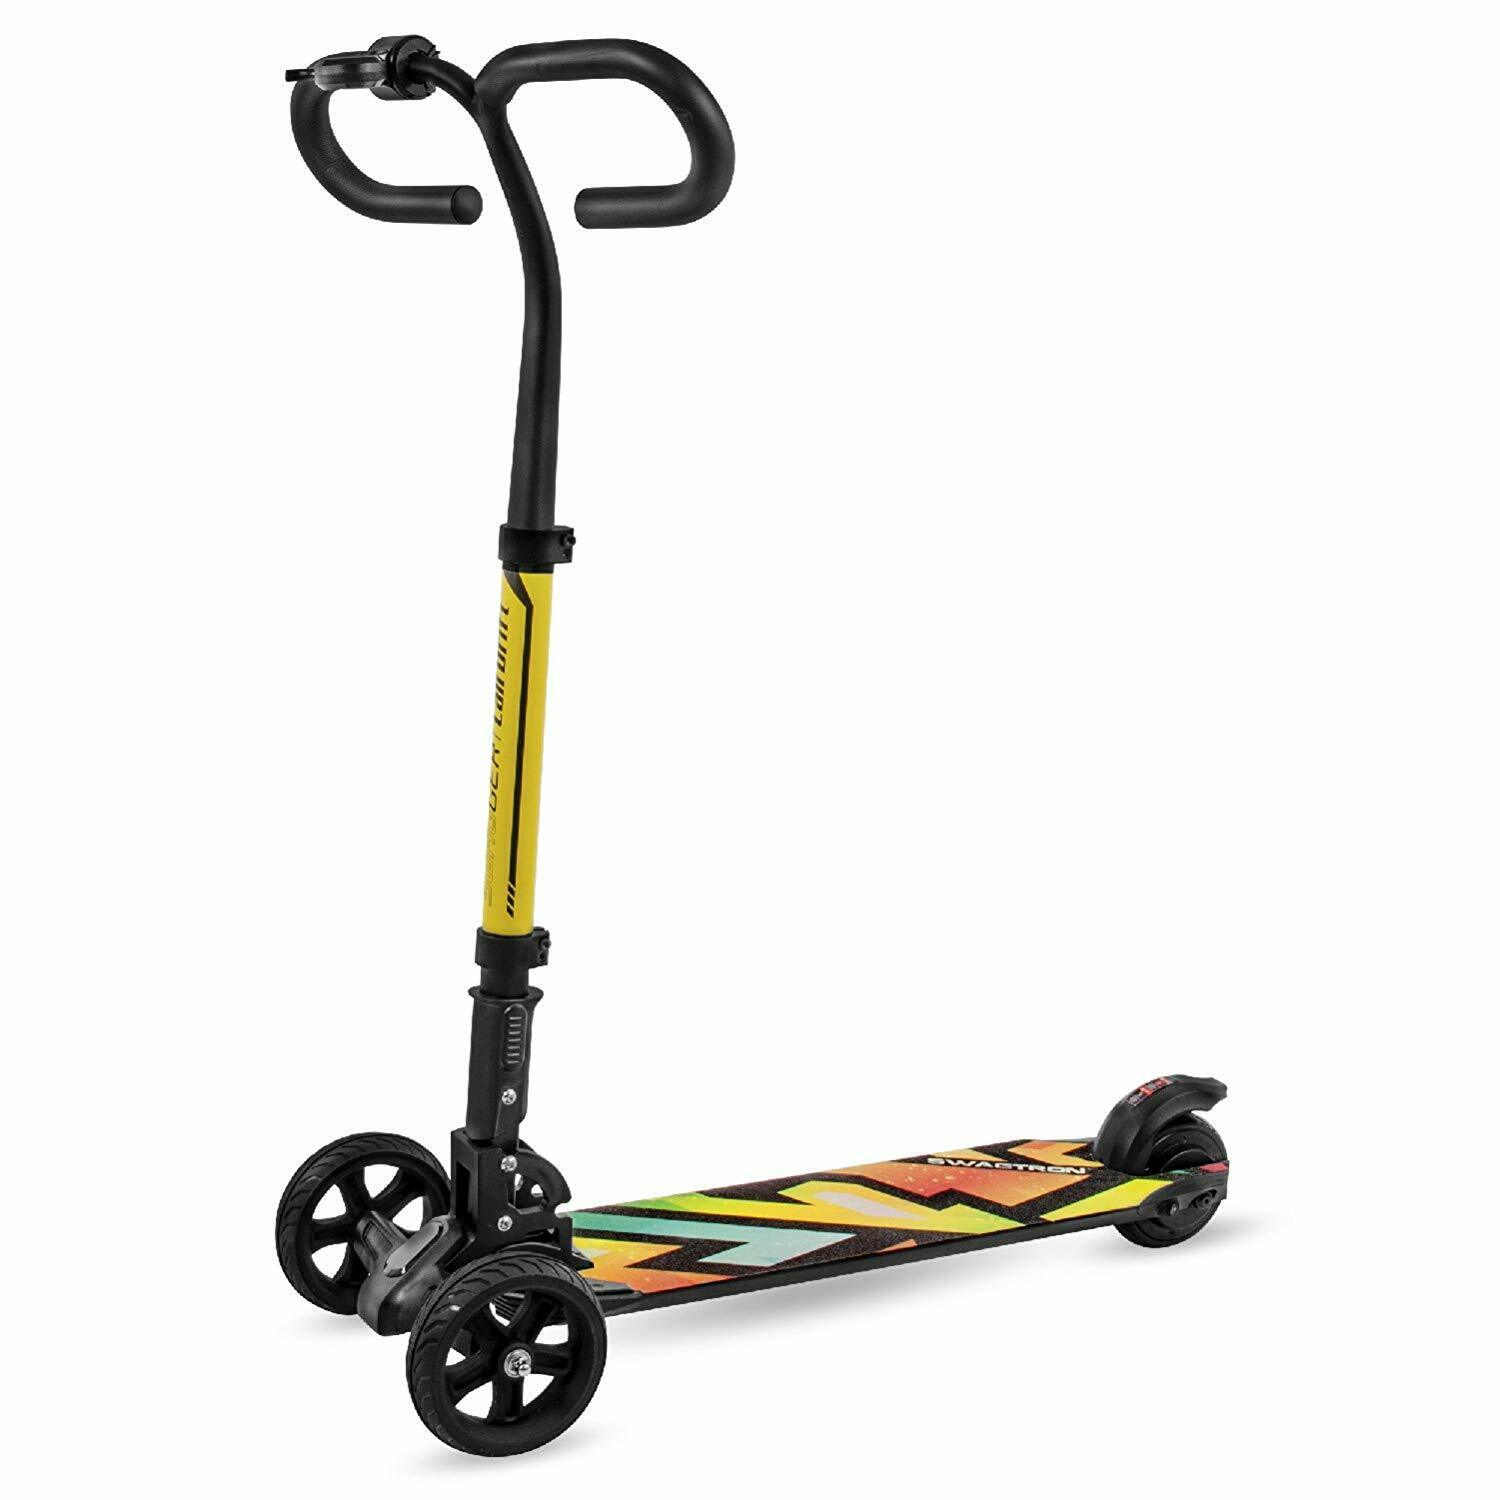 Swagtron Cali Drift 3-Wheel Foldable Electric Scooter